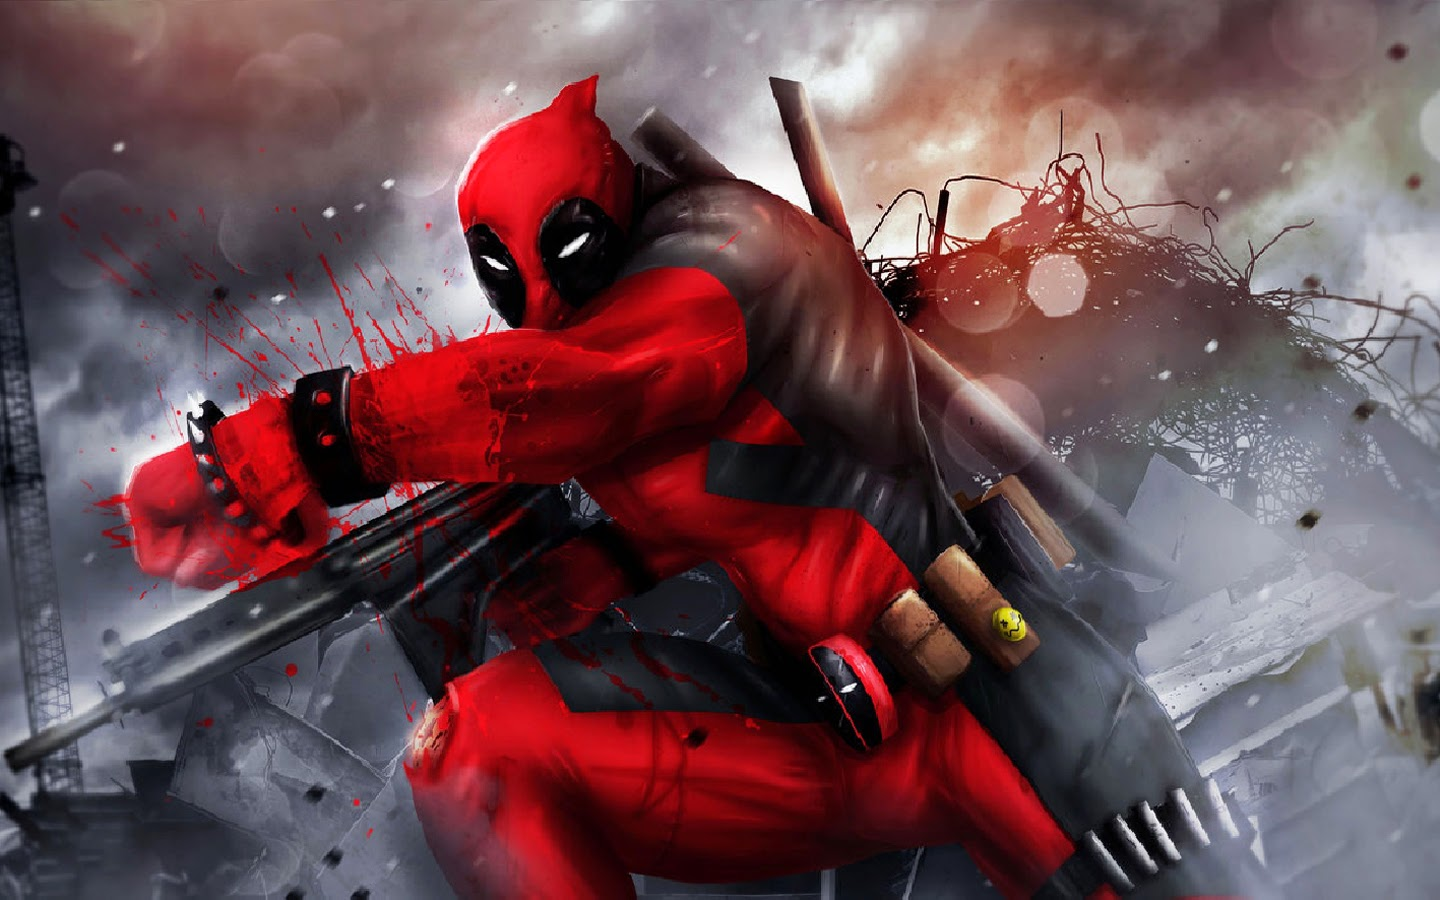 Top Cool Deadpool Wallpaper Images for Pinterest 1440x900